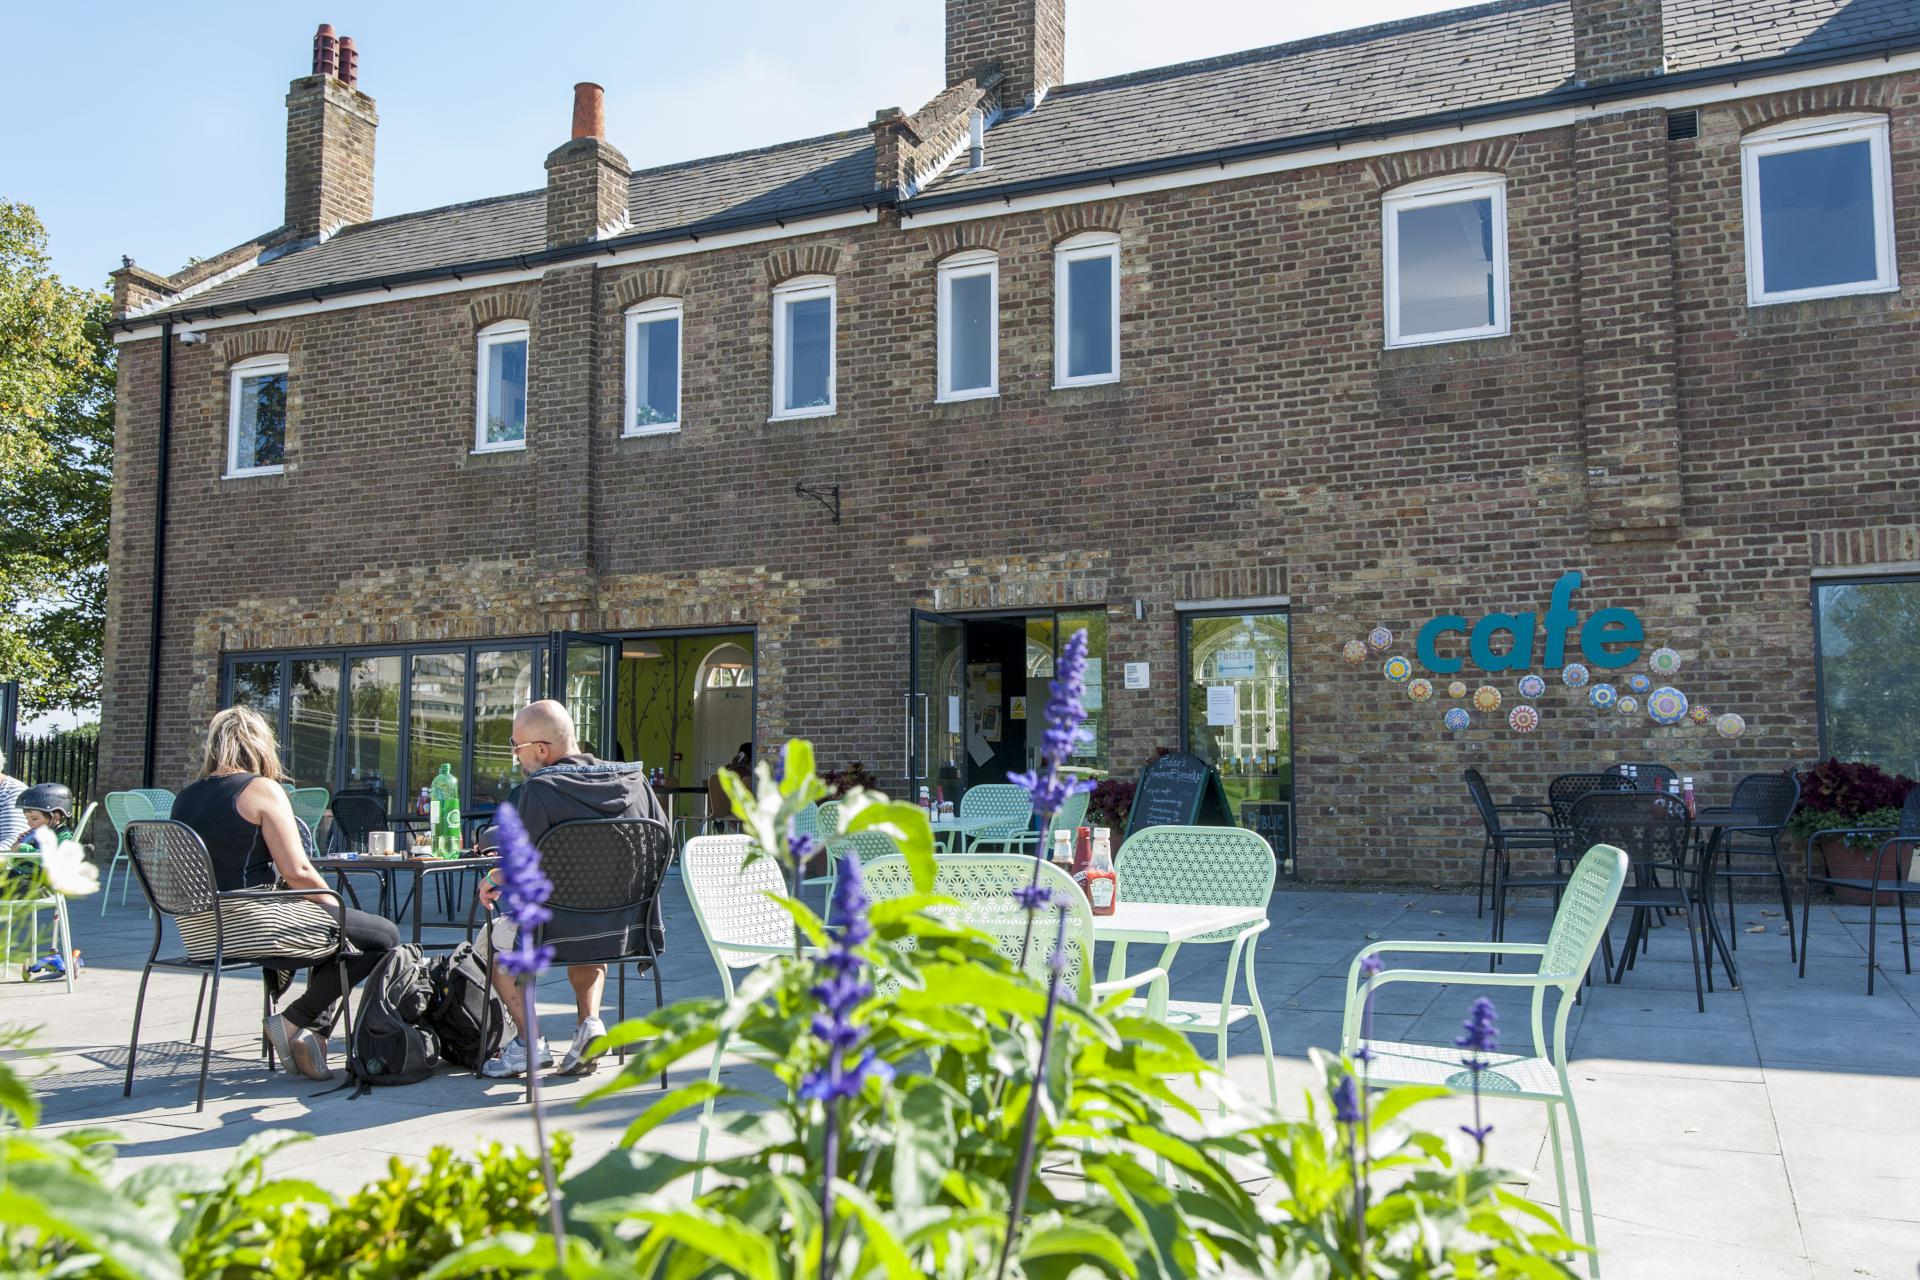 Park-Life-Cafe-Burgess-Park-London